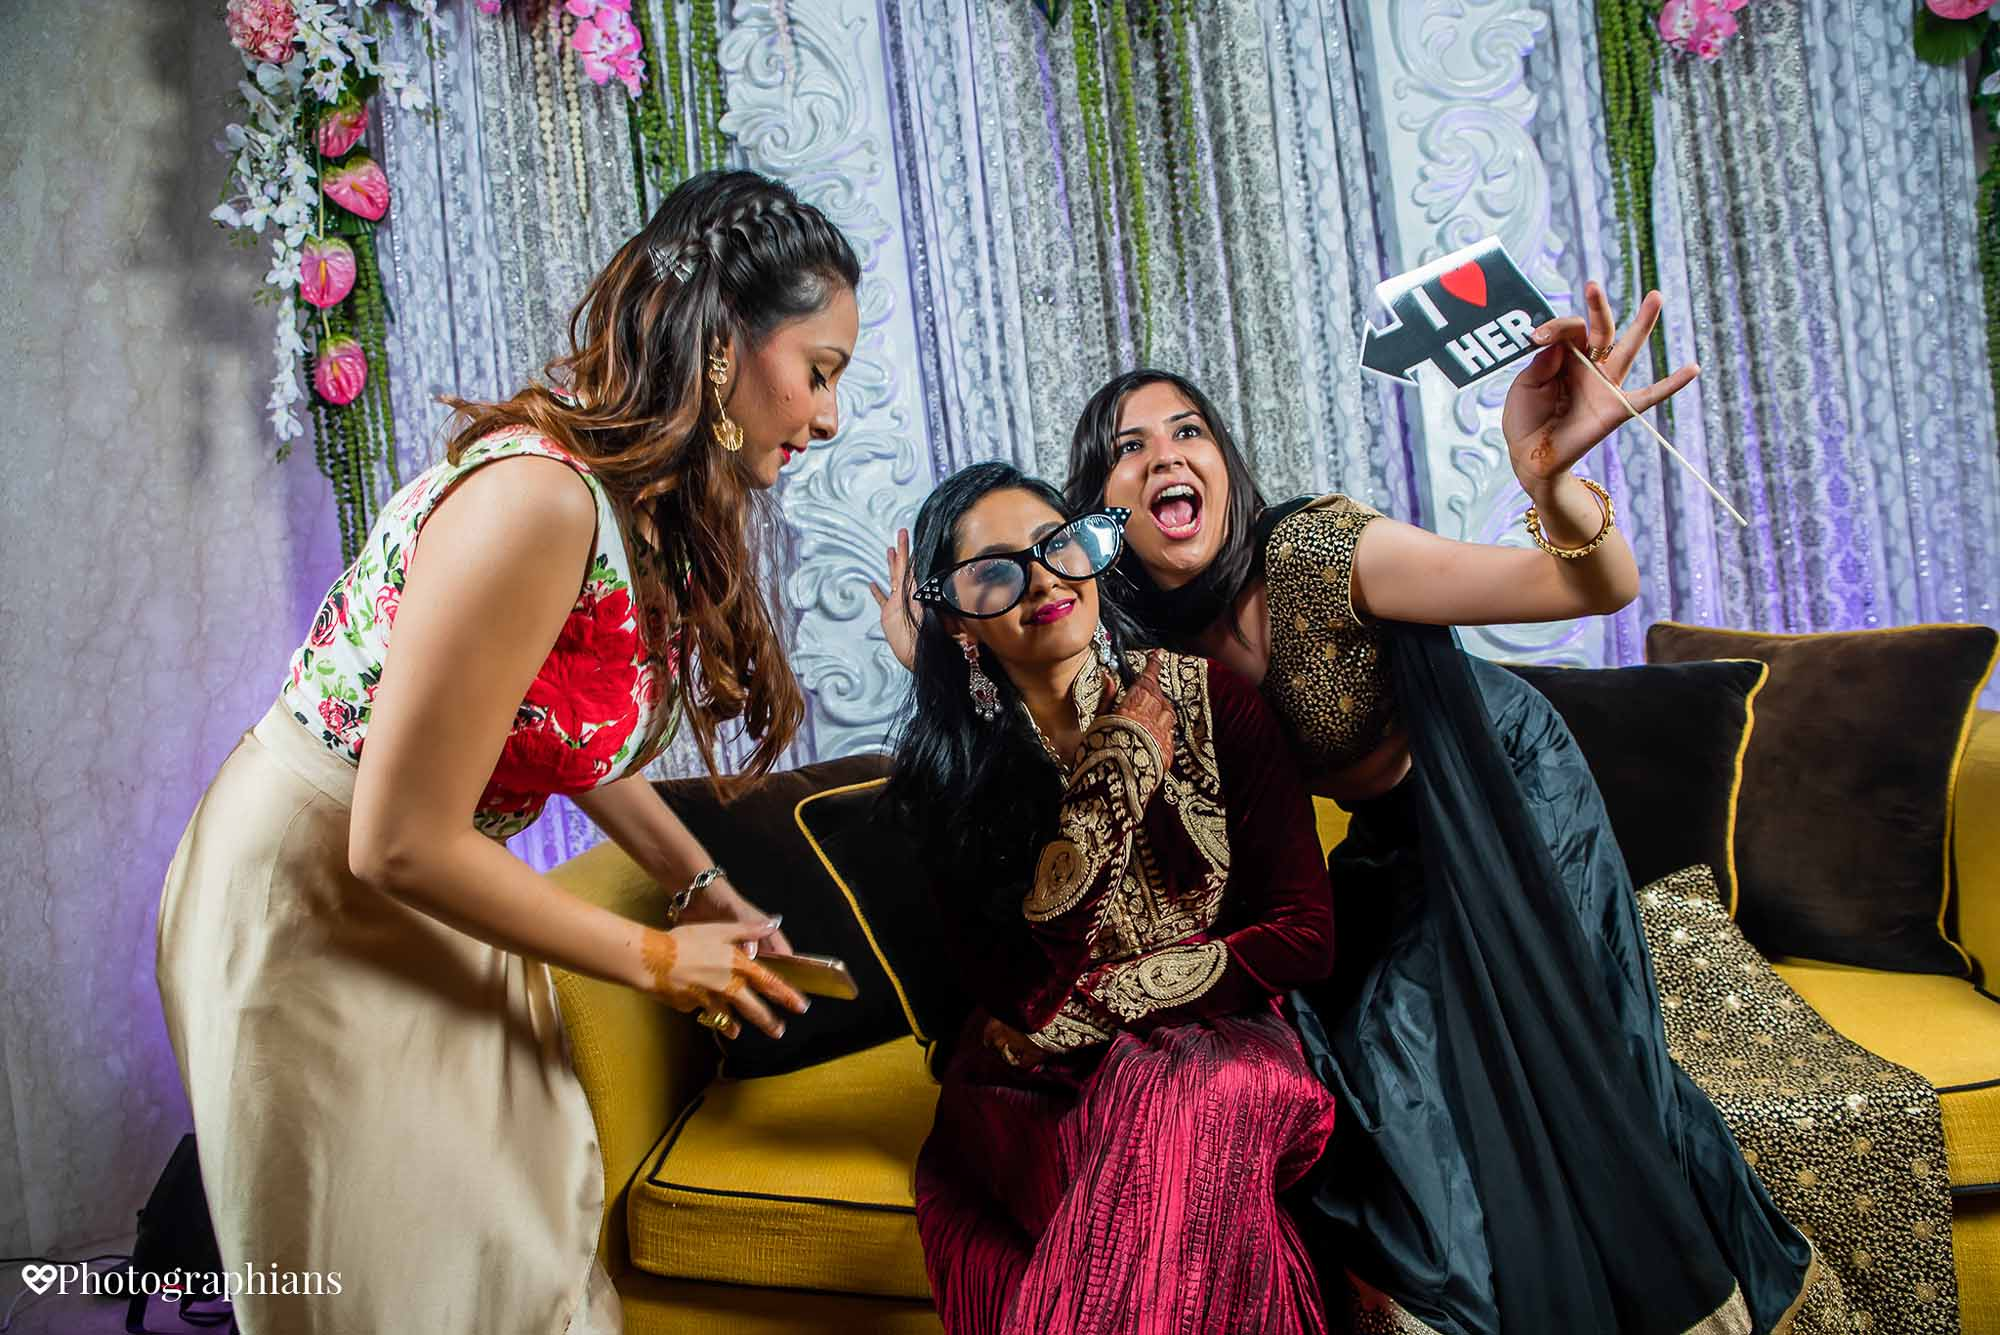 Punjabi_Marwari_Wedding_Kolkata_Photographians_-VIDHI-243